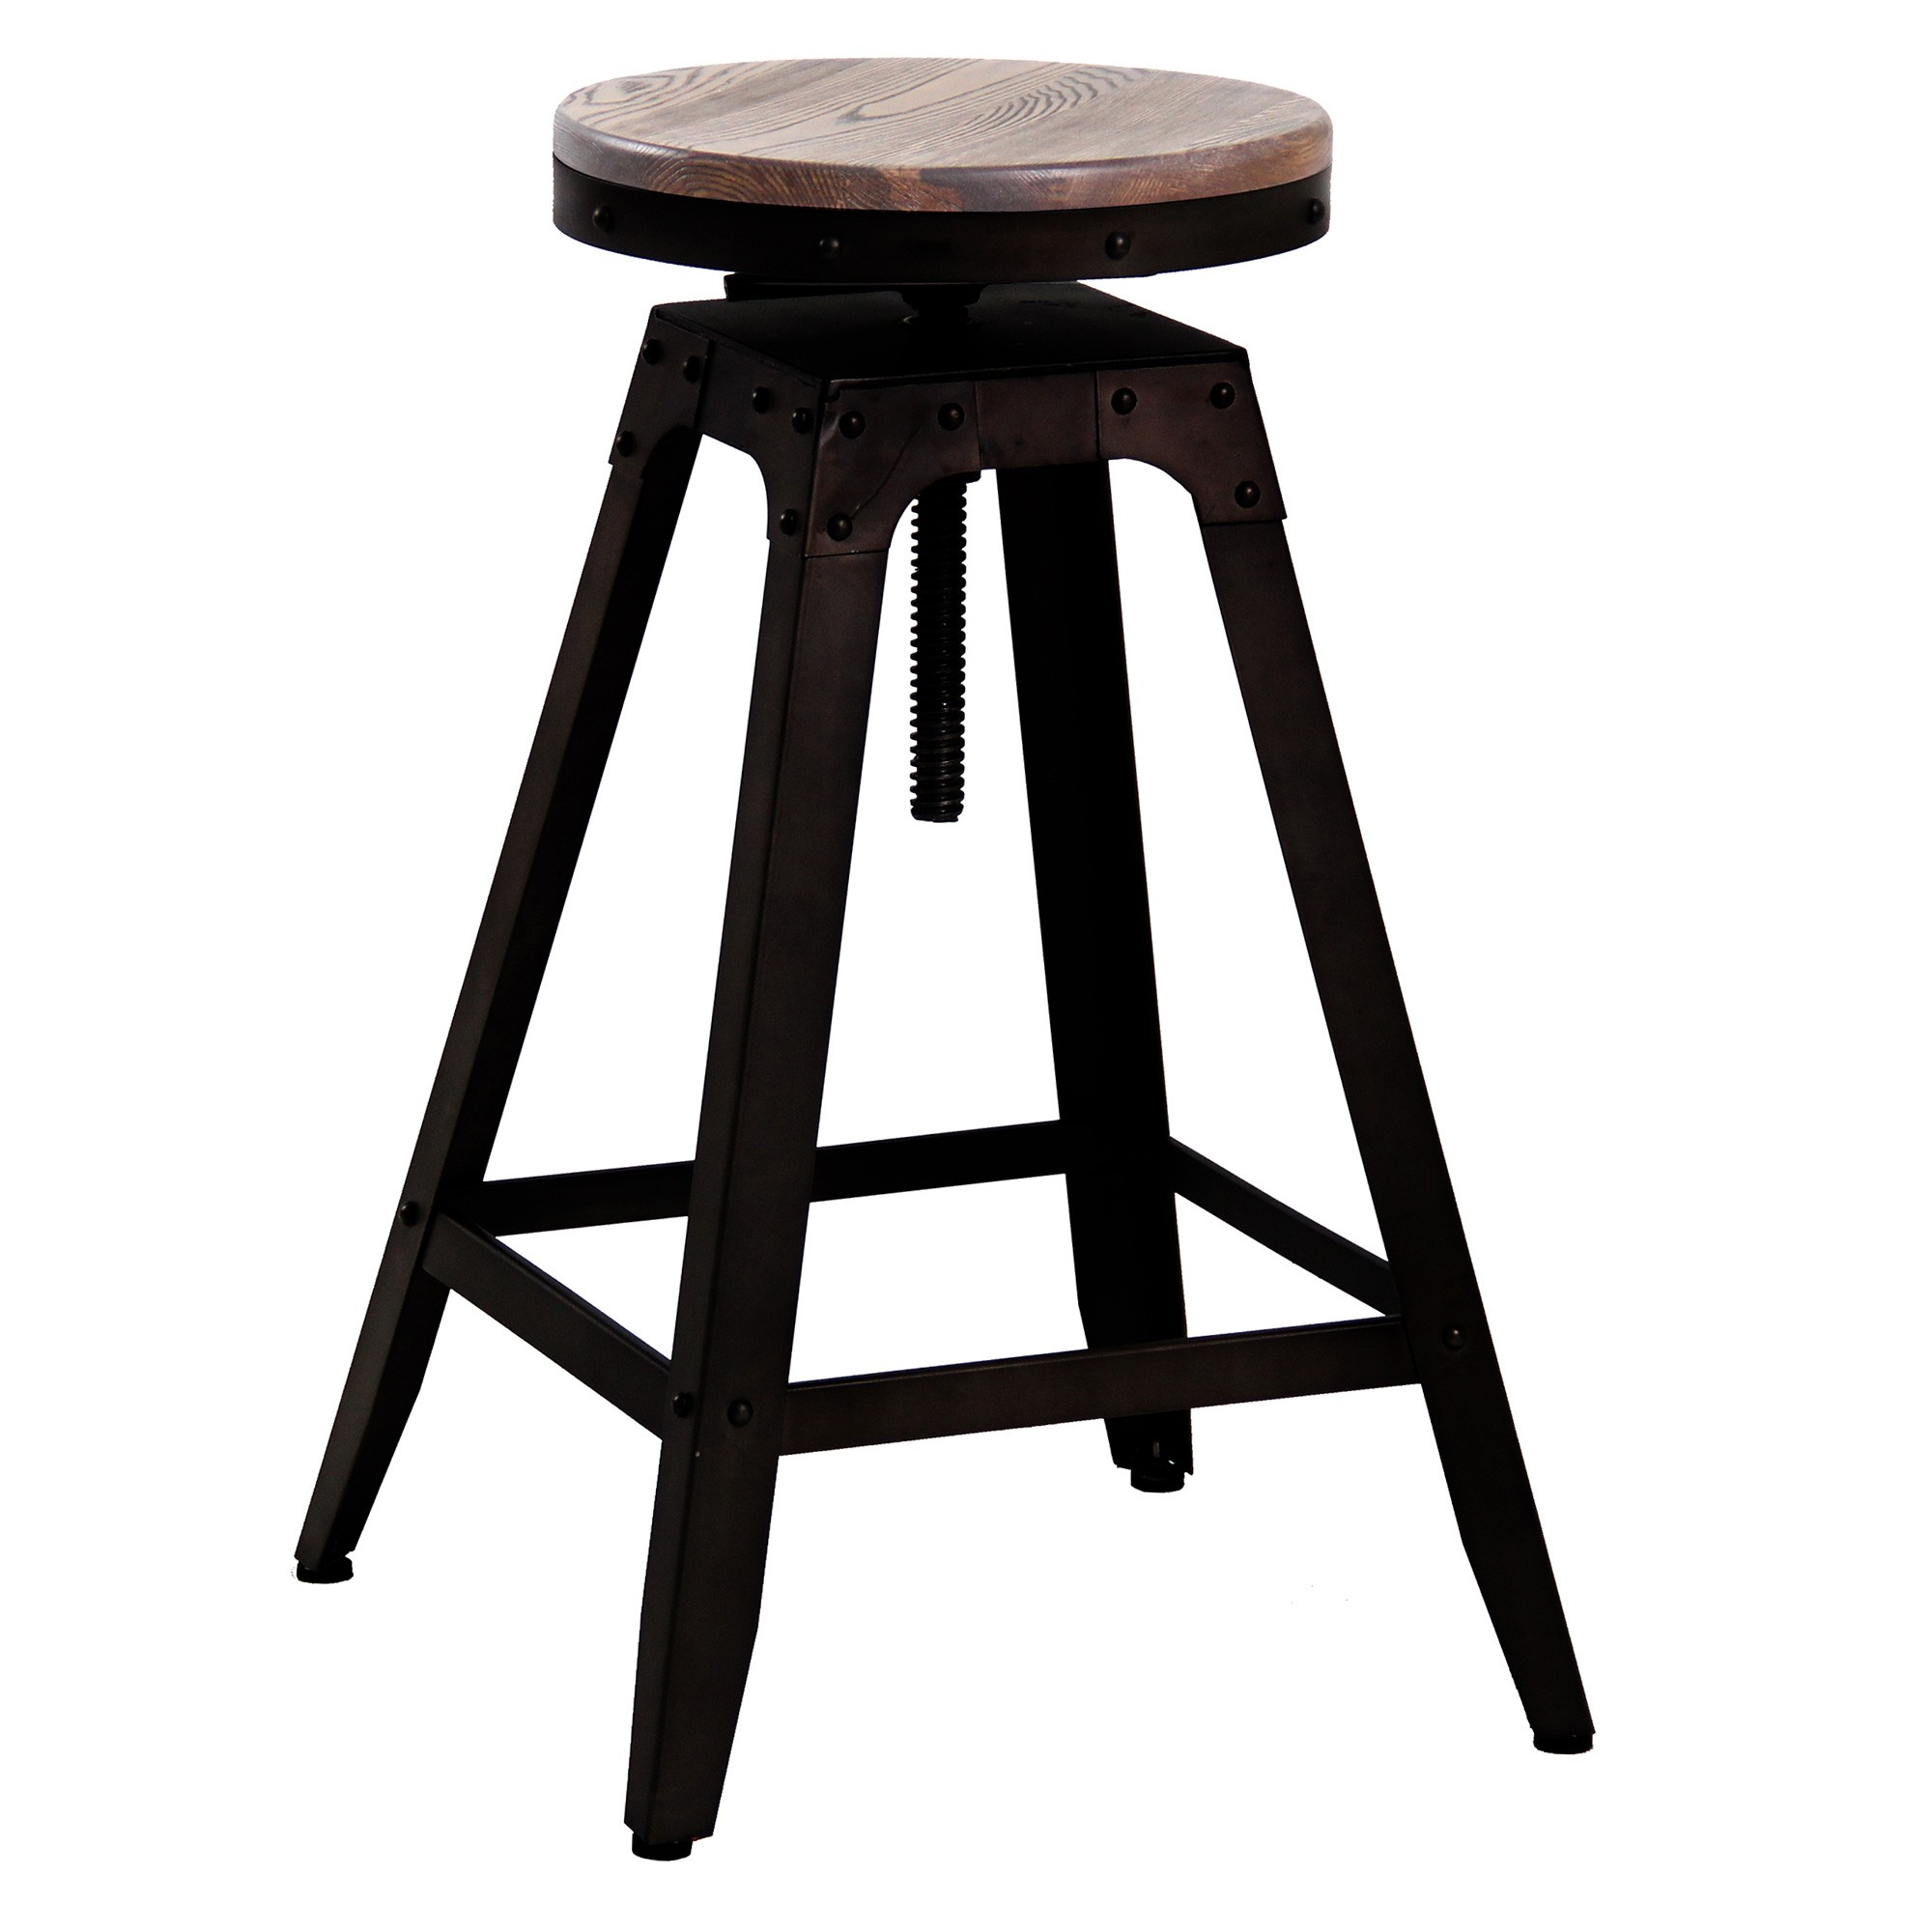 Elstow Commercial Grade Industrial Adjustable Steel Counter / Bar Stool